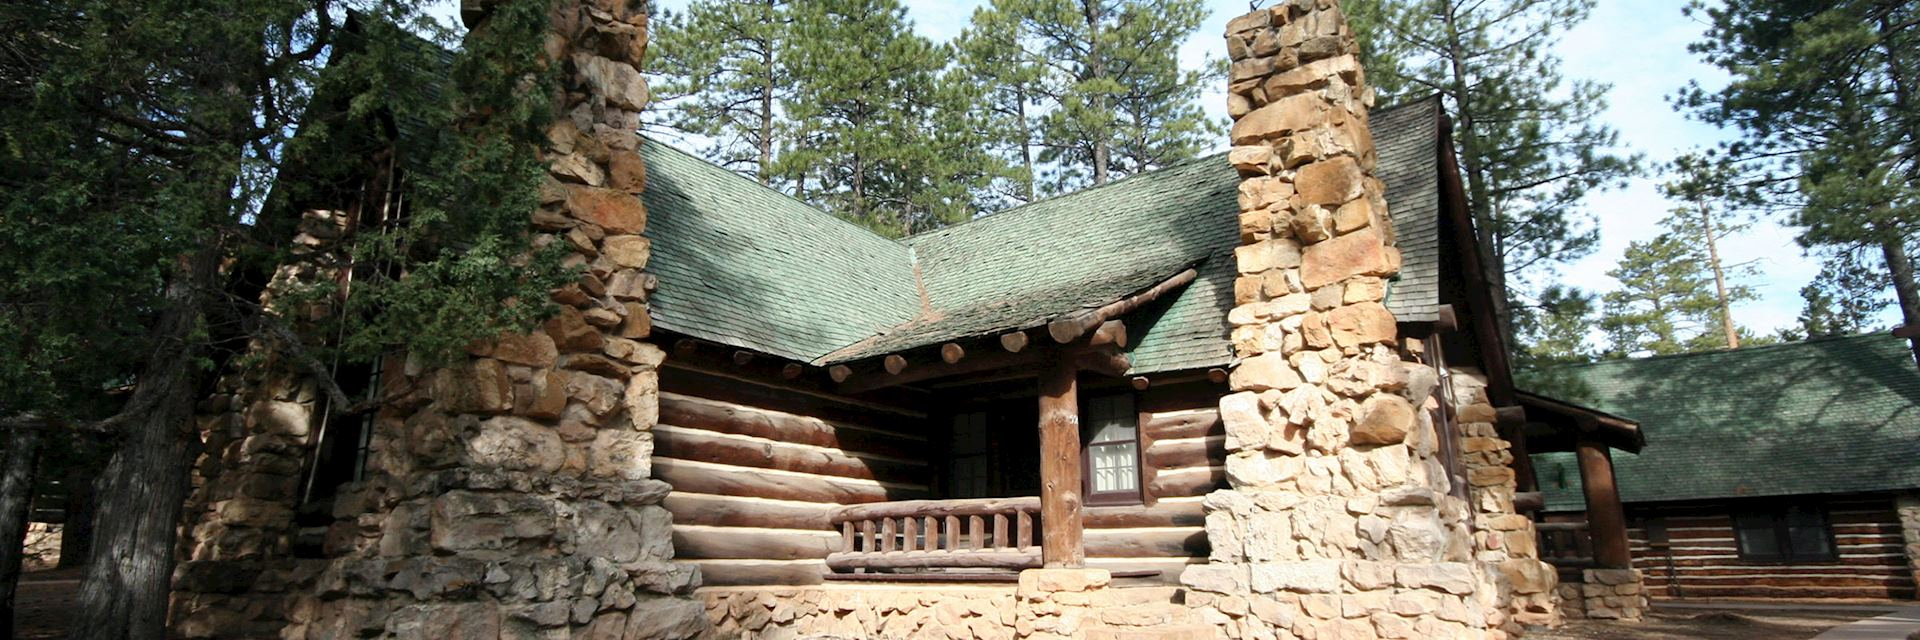 Western Cabins, The Lodge at Bryce Canyon